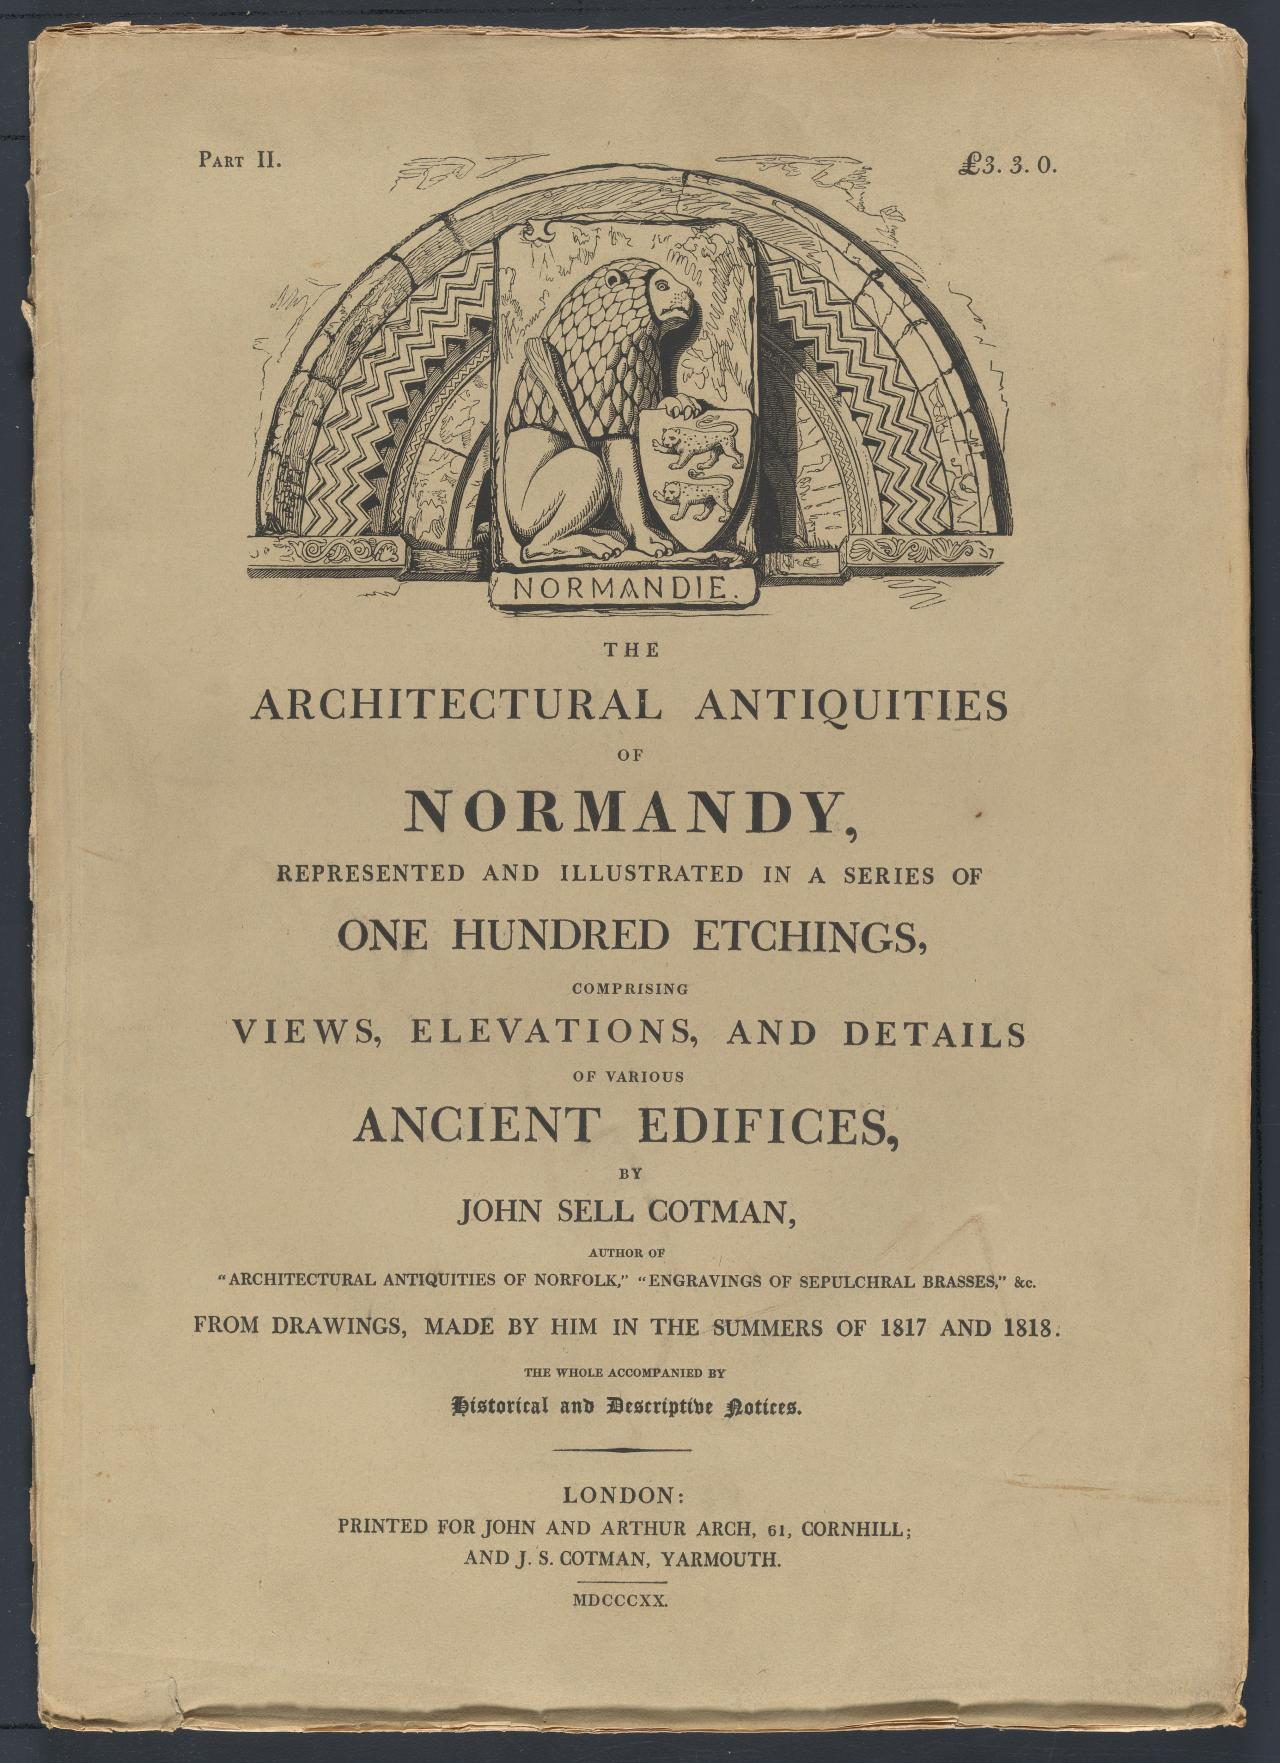 The Architectural Antiquities of Normandy, parts I-IV